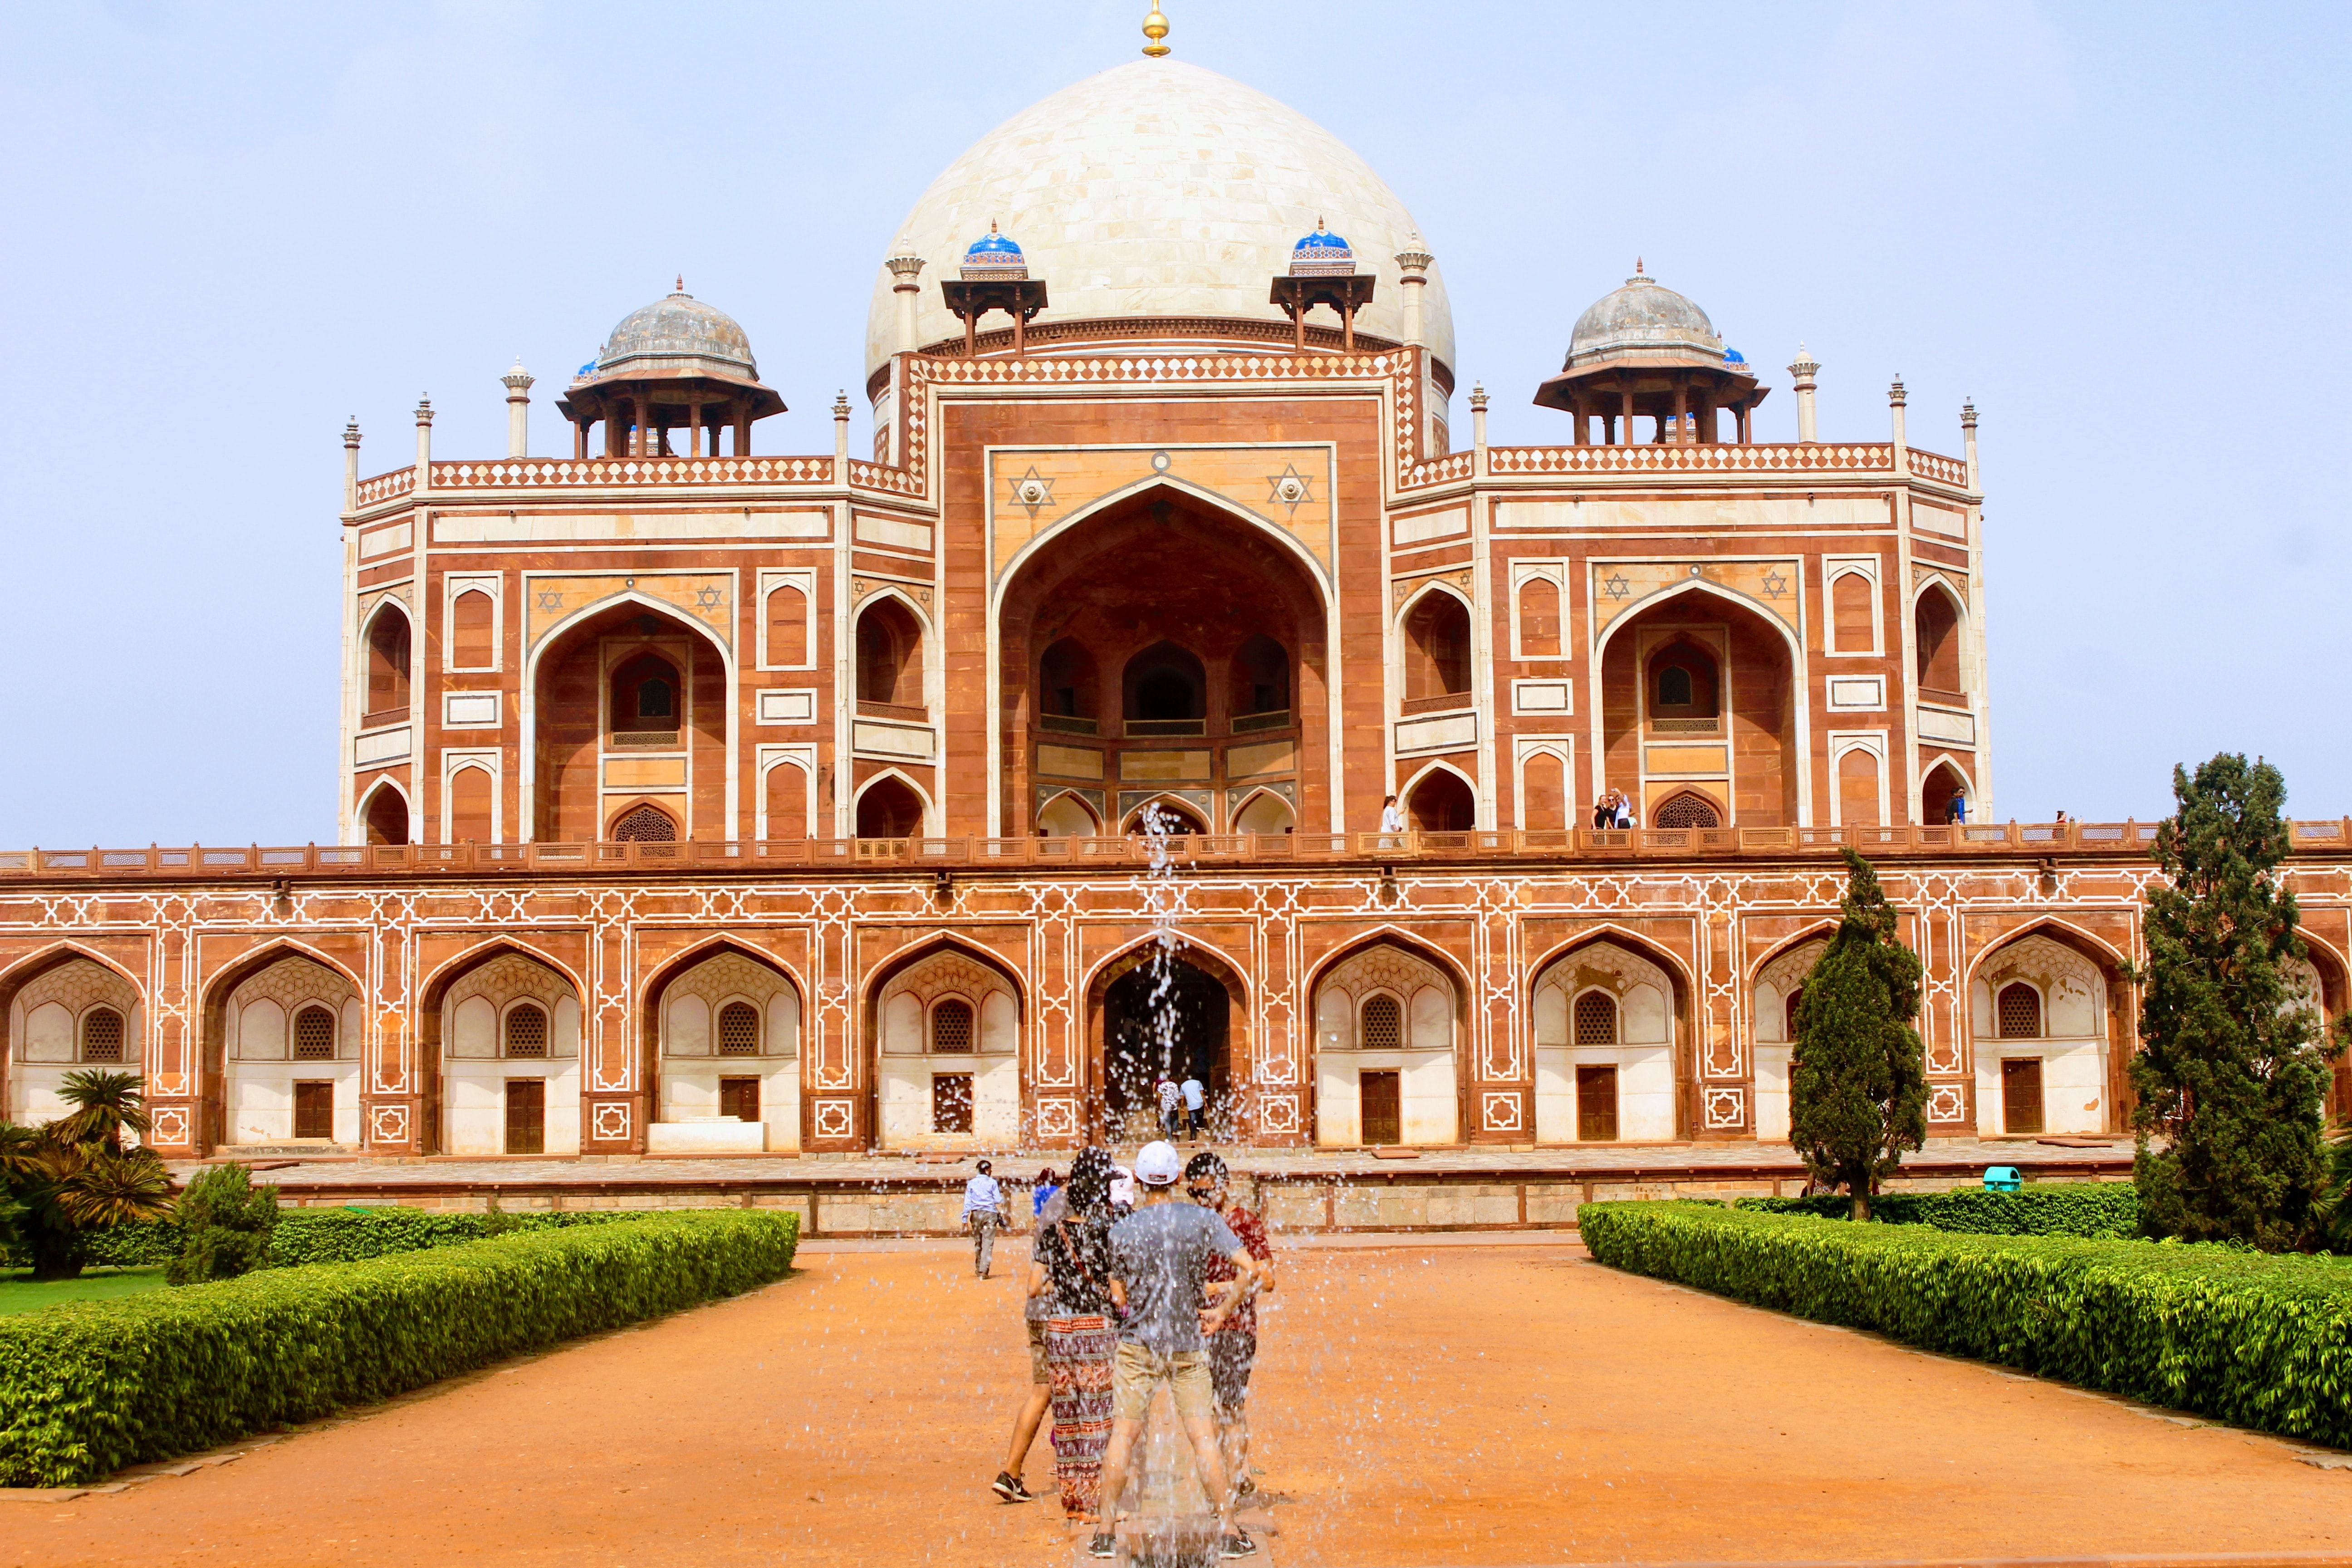 Humayuns Tomb, New Delhi, What to see in Delhi